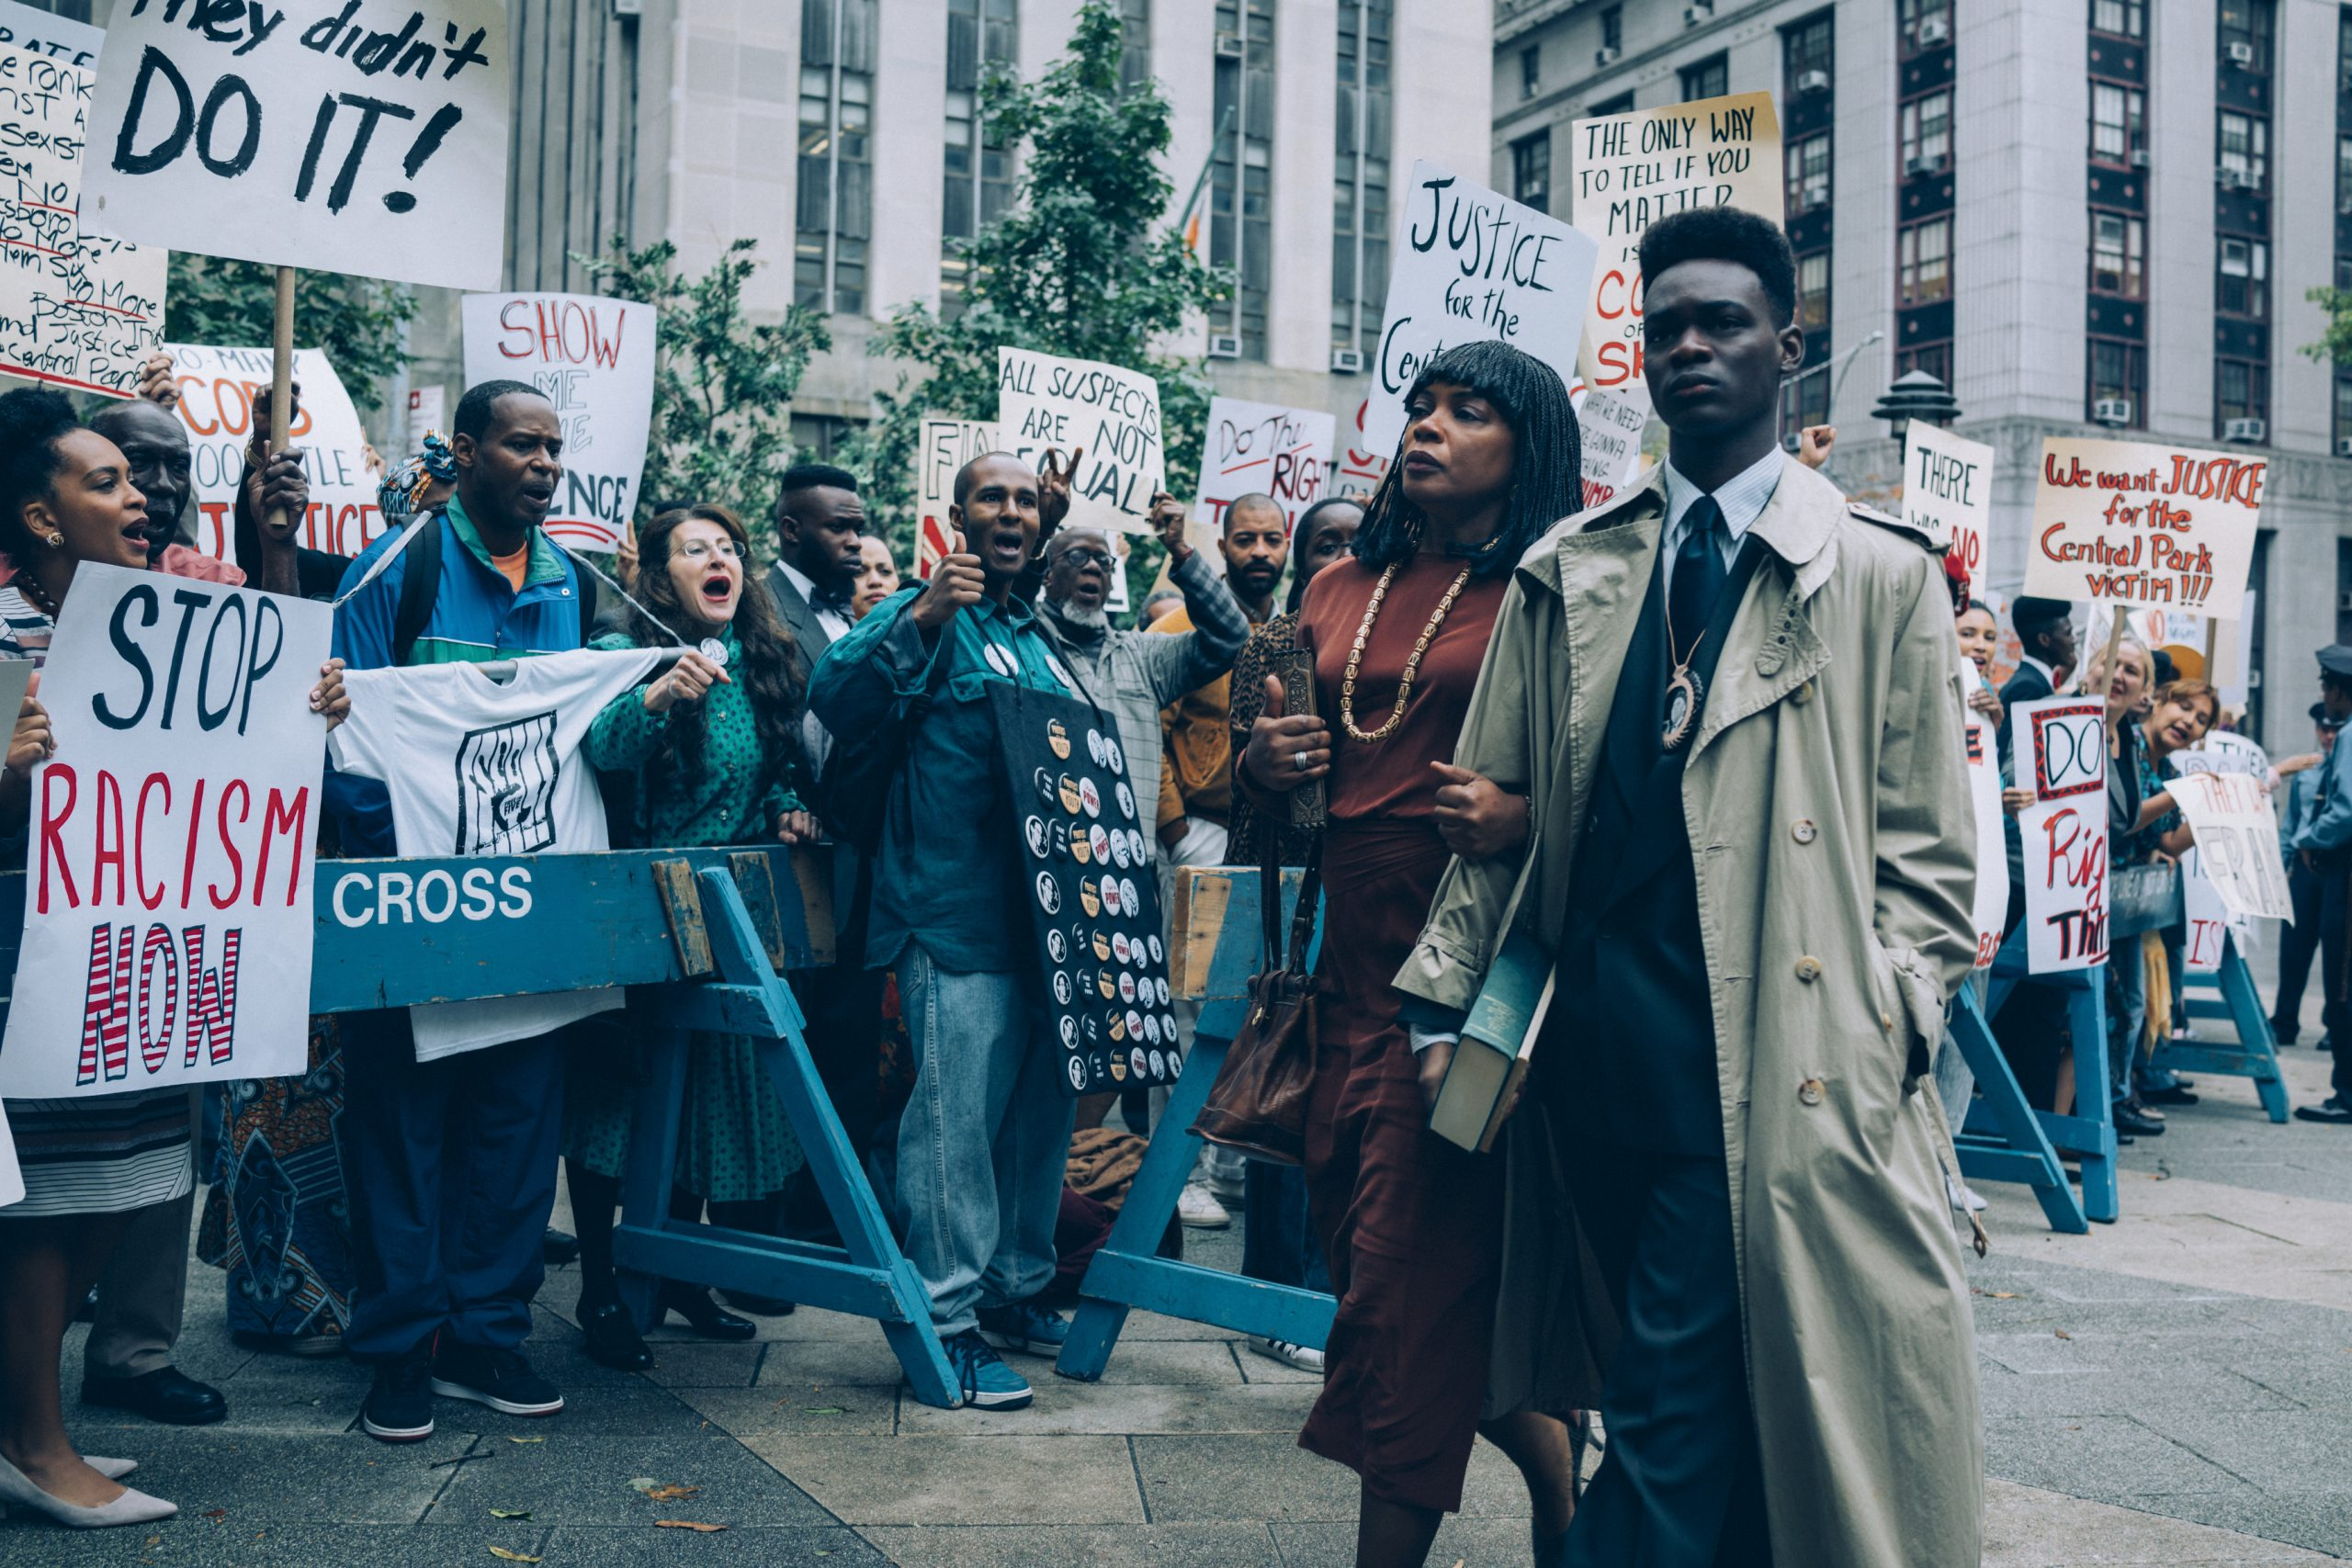 A scene in When they see us: A teenager, a woman and a crowd of protesting people in the daylight